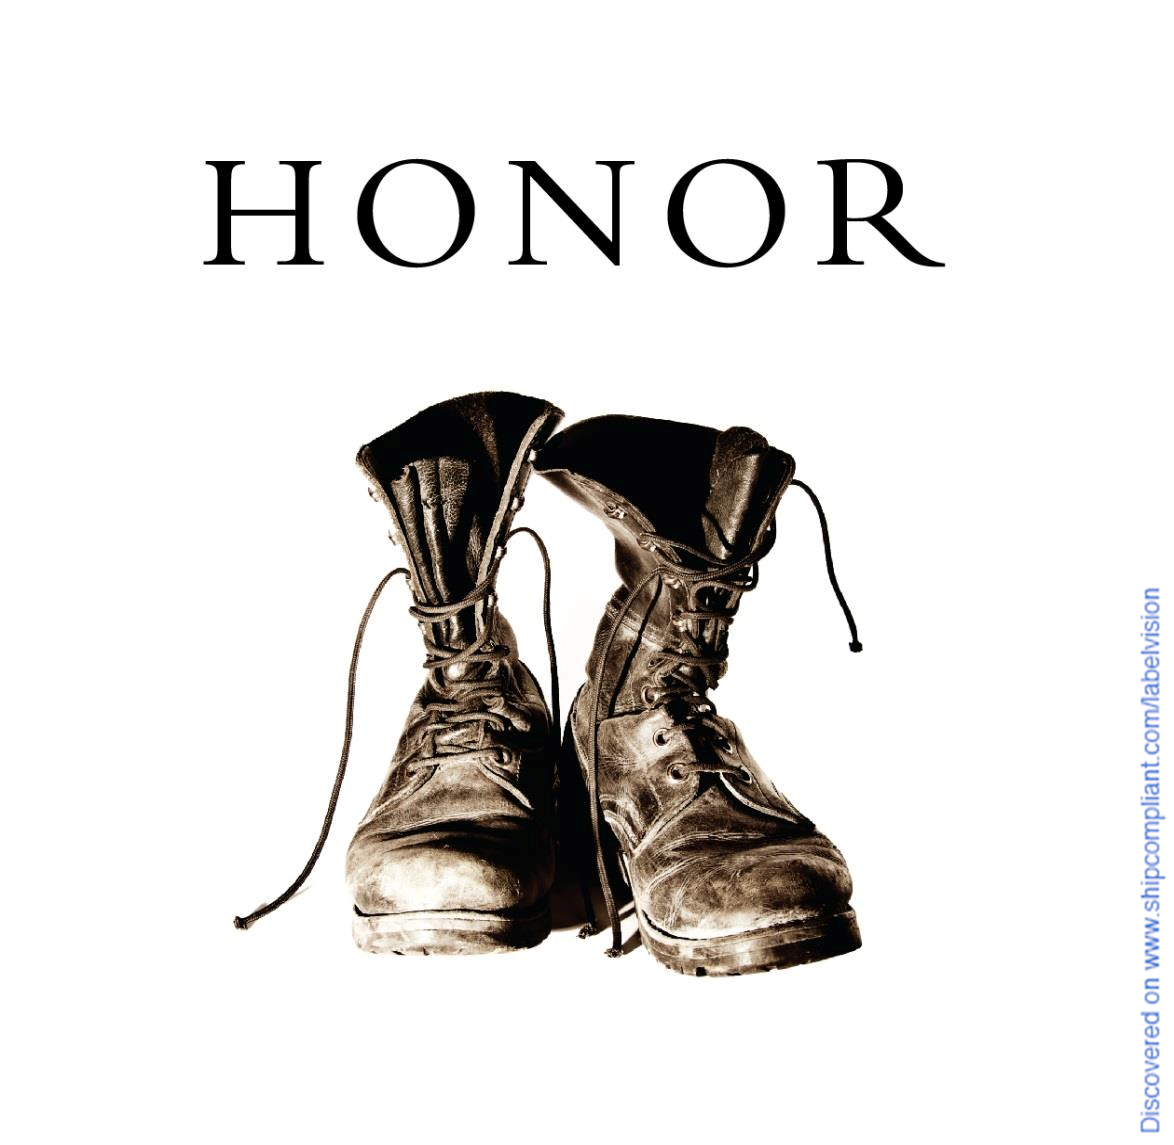 I found HONOR Pinot Noir RUSSIAN RIVER VALLEY on ShipCompliant.com/LabelVision